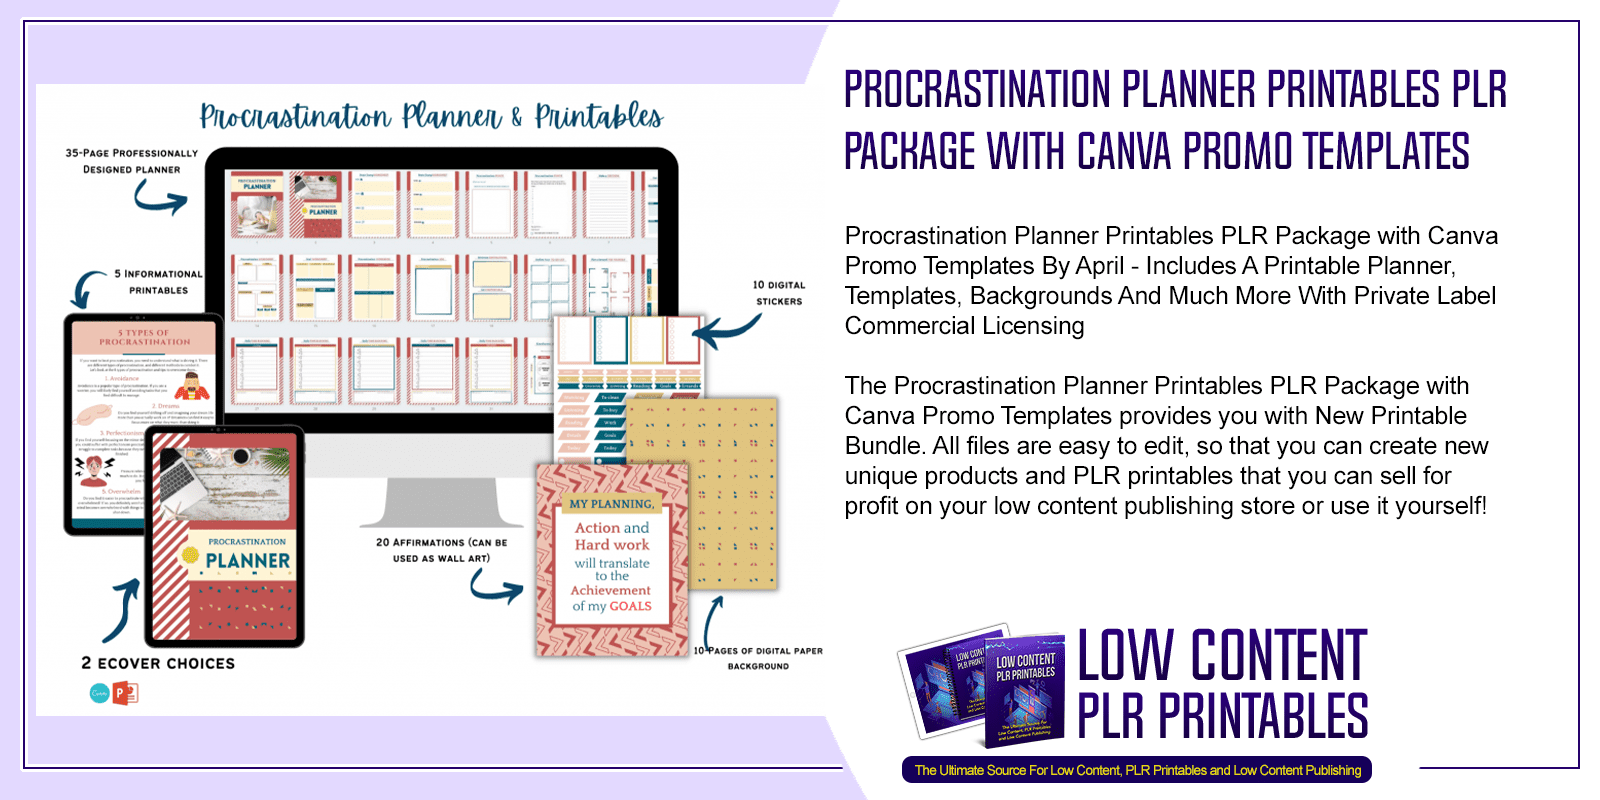 Procrastination Planner Printables PLR Package with Canva Promo Templates